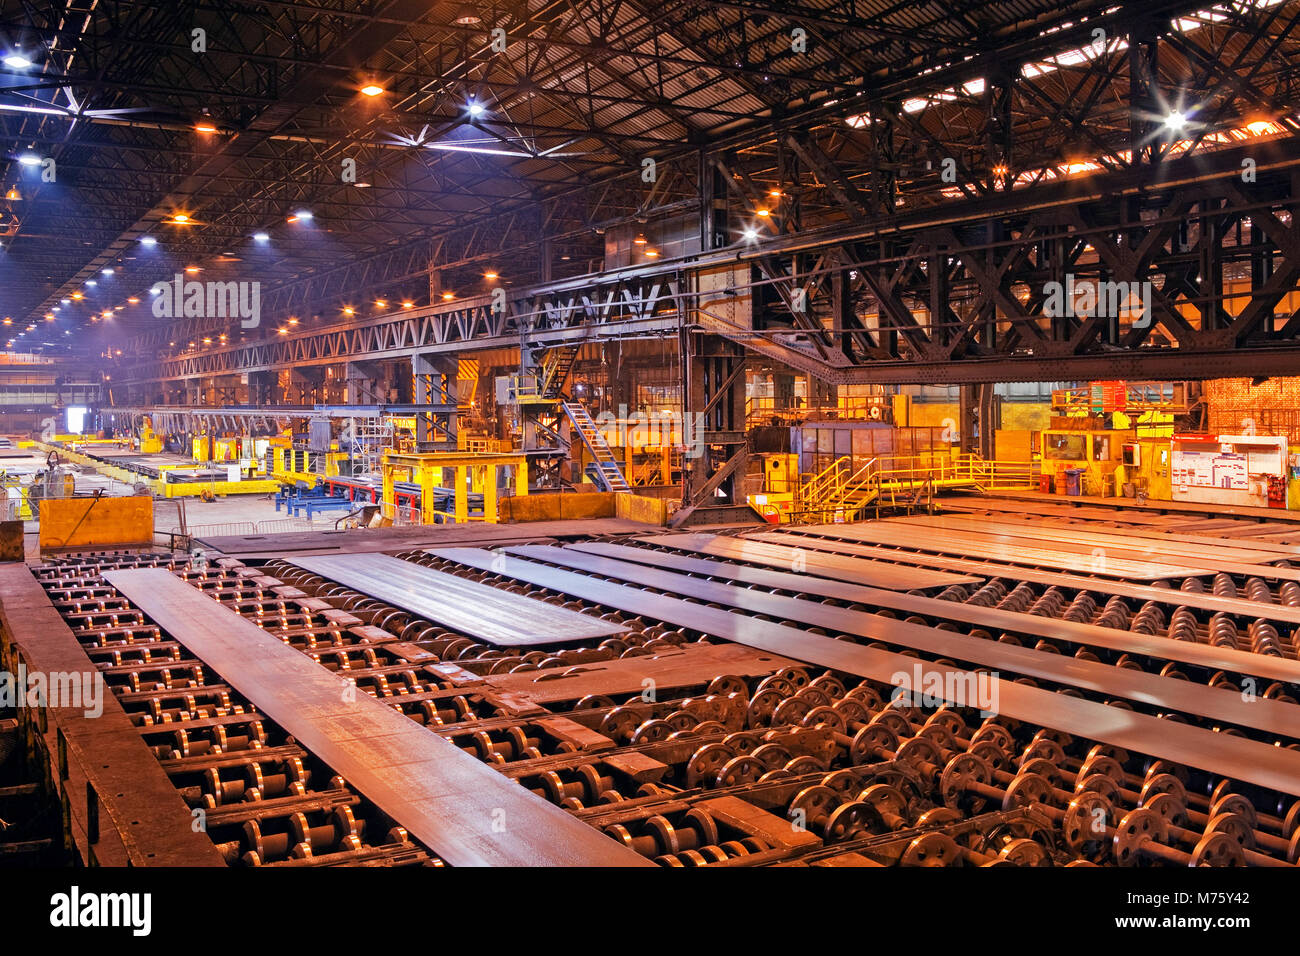 The interior of a building used in the steel industry in the UK - Stock Image